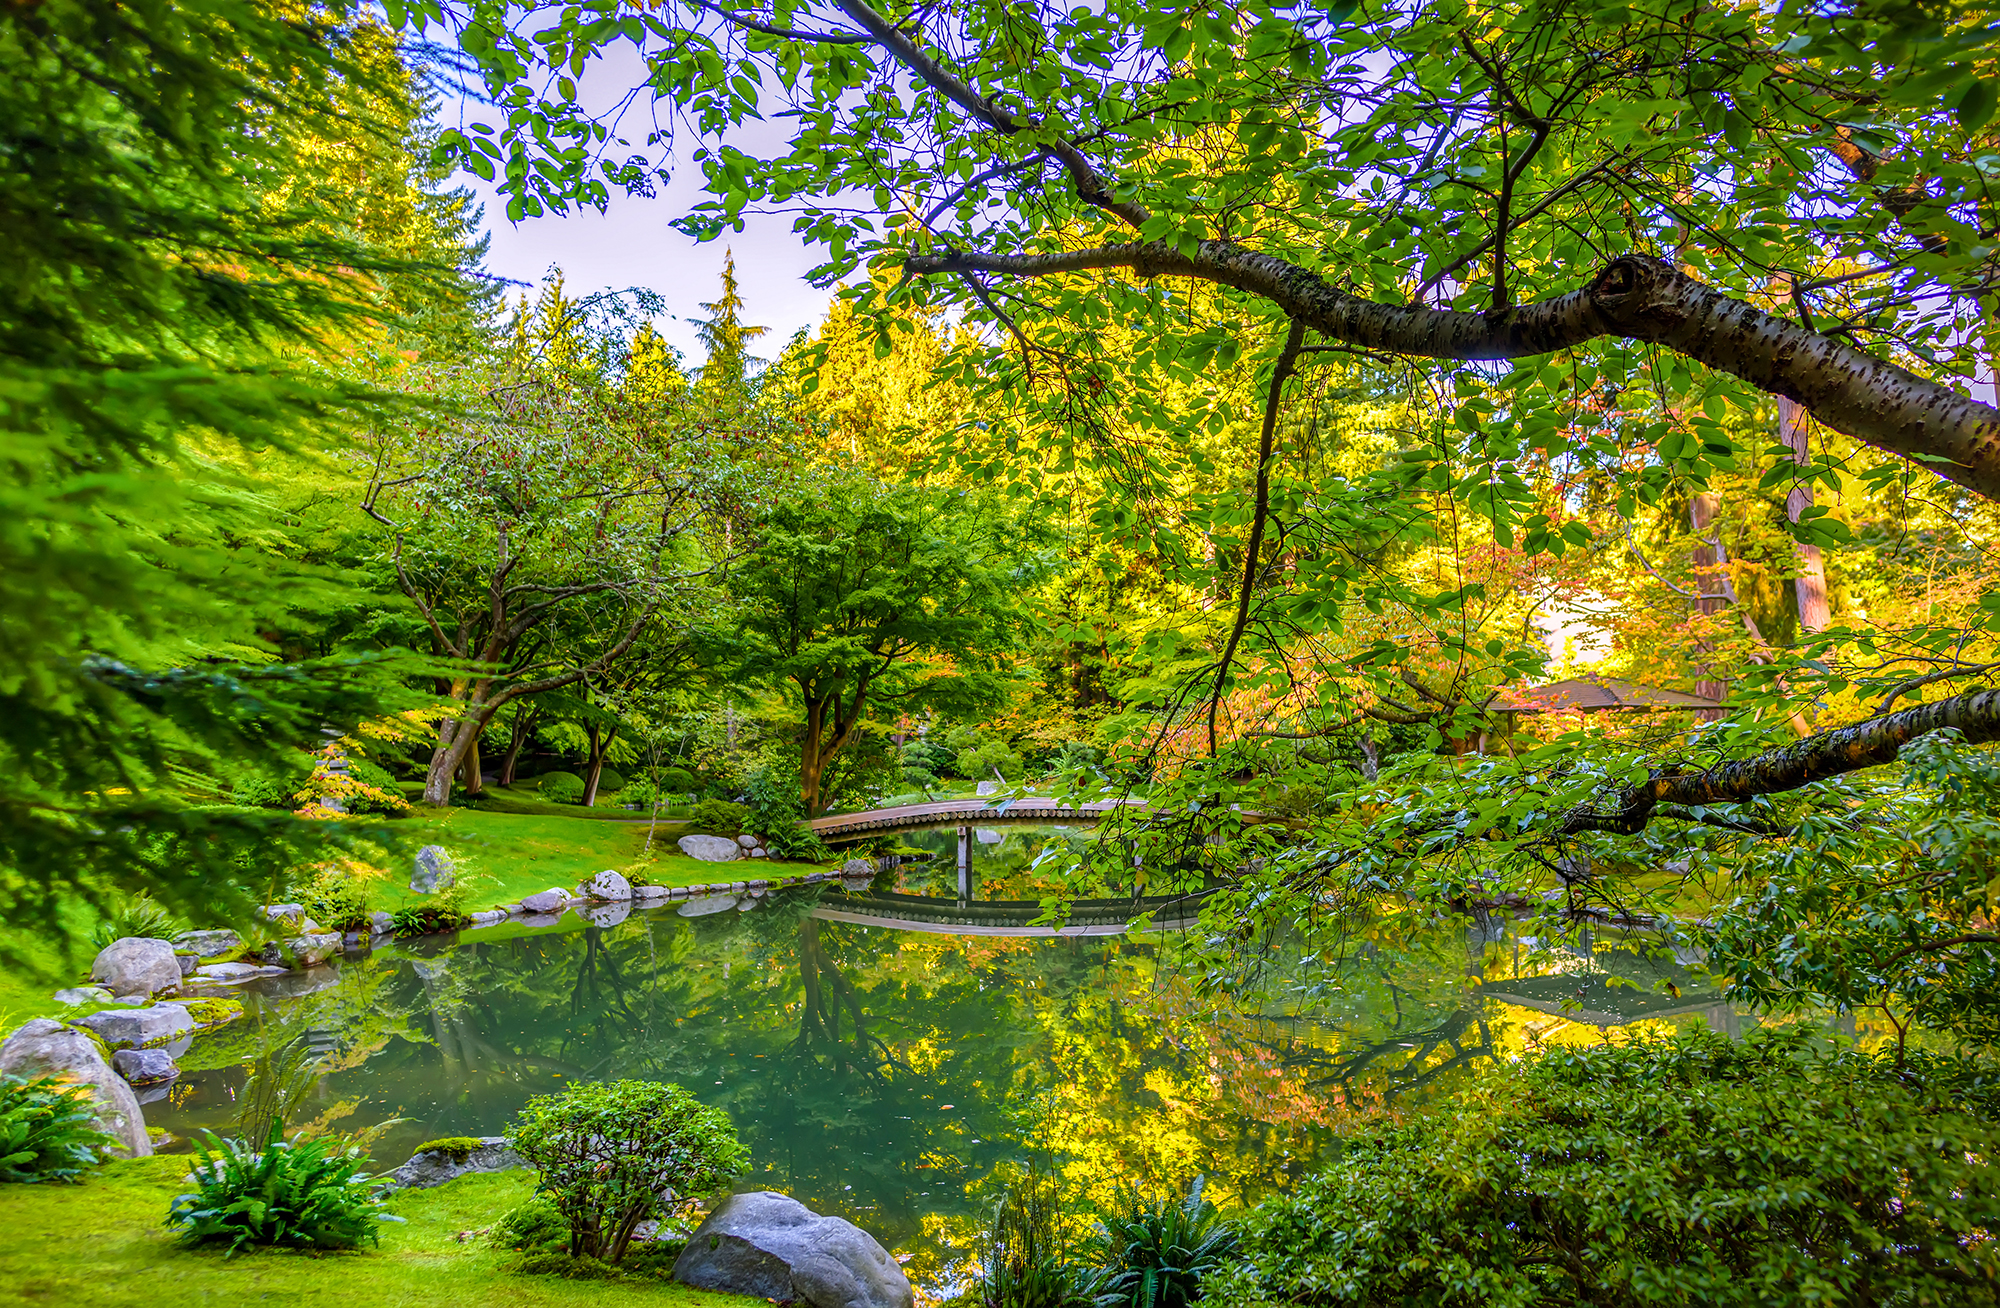 Peaceful afternoon at Nitobe Memorial Garden.